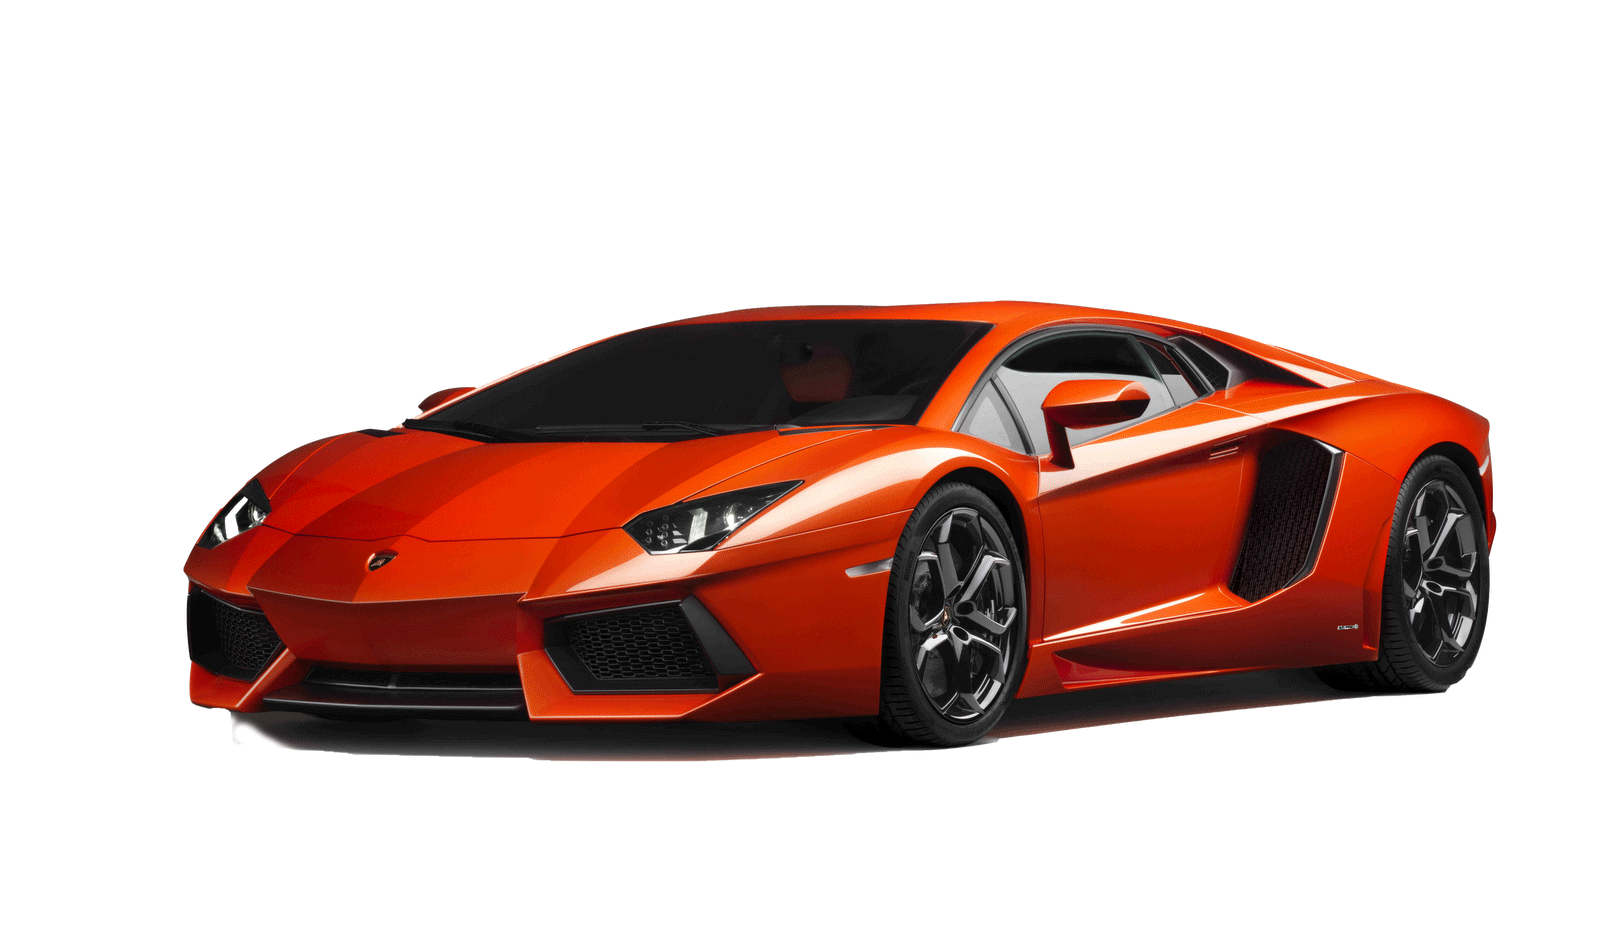 Red sports car clipart clip art Lamborghini Aventador PNG Clipart - Download free images in PNG clip art